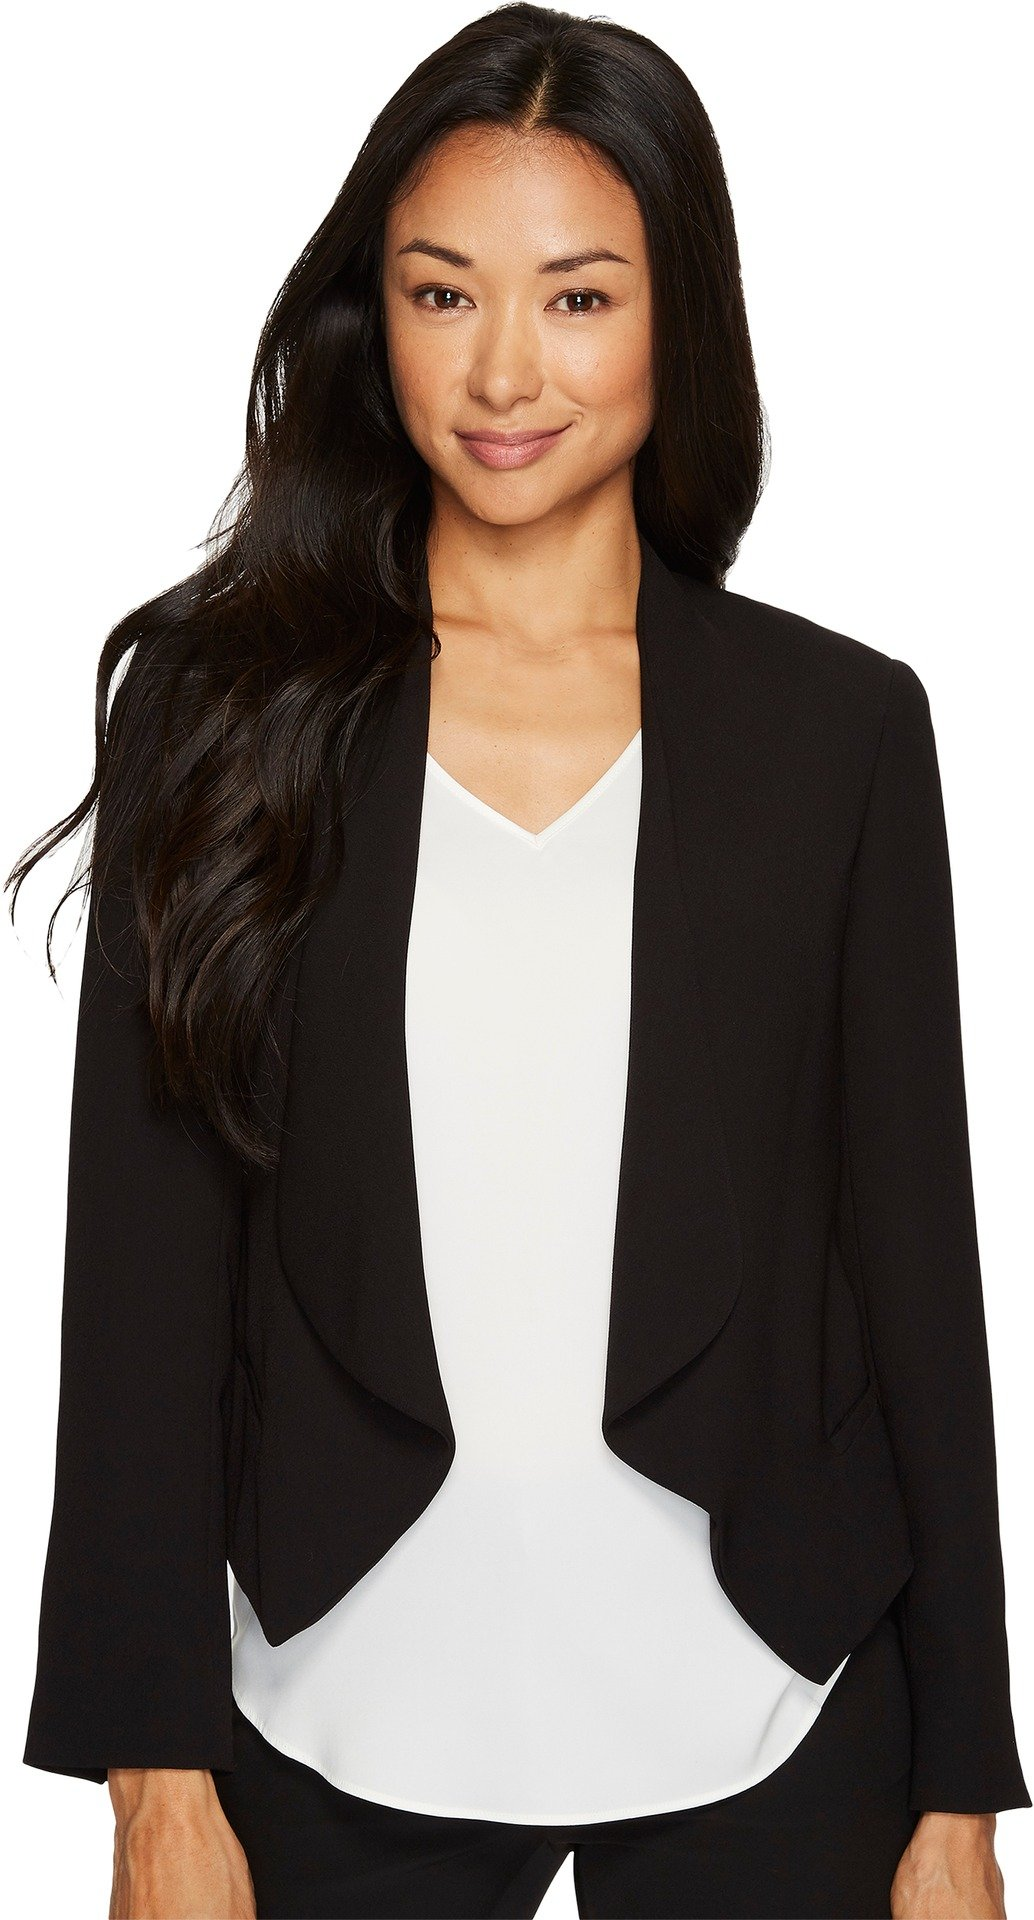 Vince Camuto Specialty Size Womens Petite Drape Front Blazer Rich Black 4P One Size